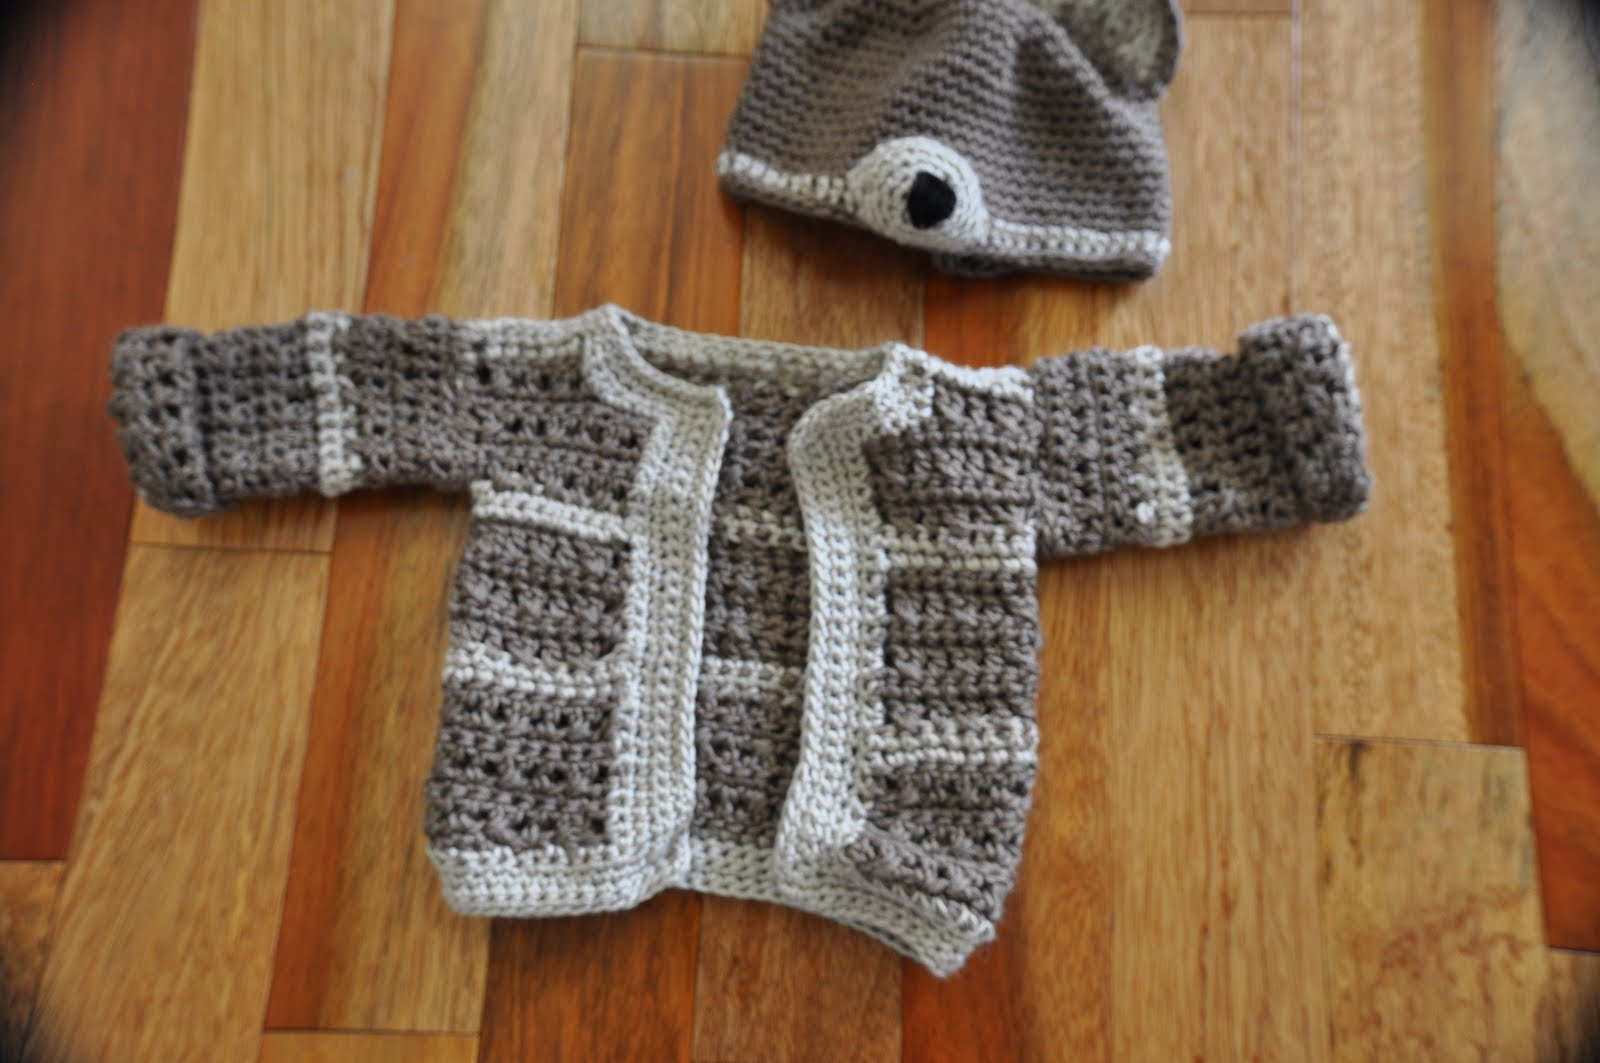 Crochet Pattern Central Baby Cardigans : the jilted ballerina: June 2010